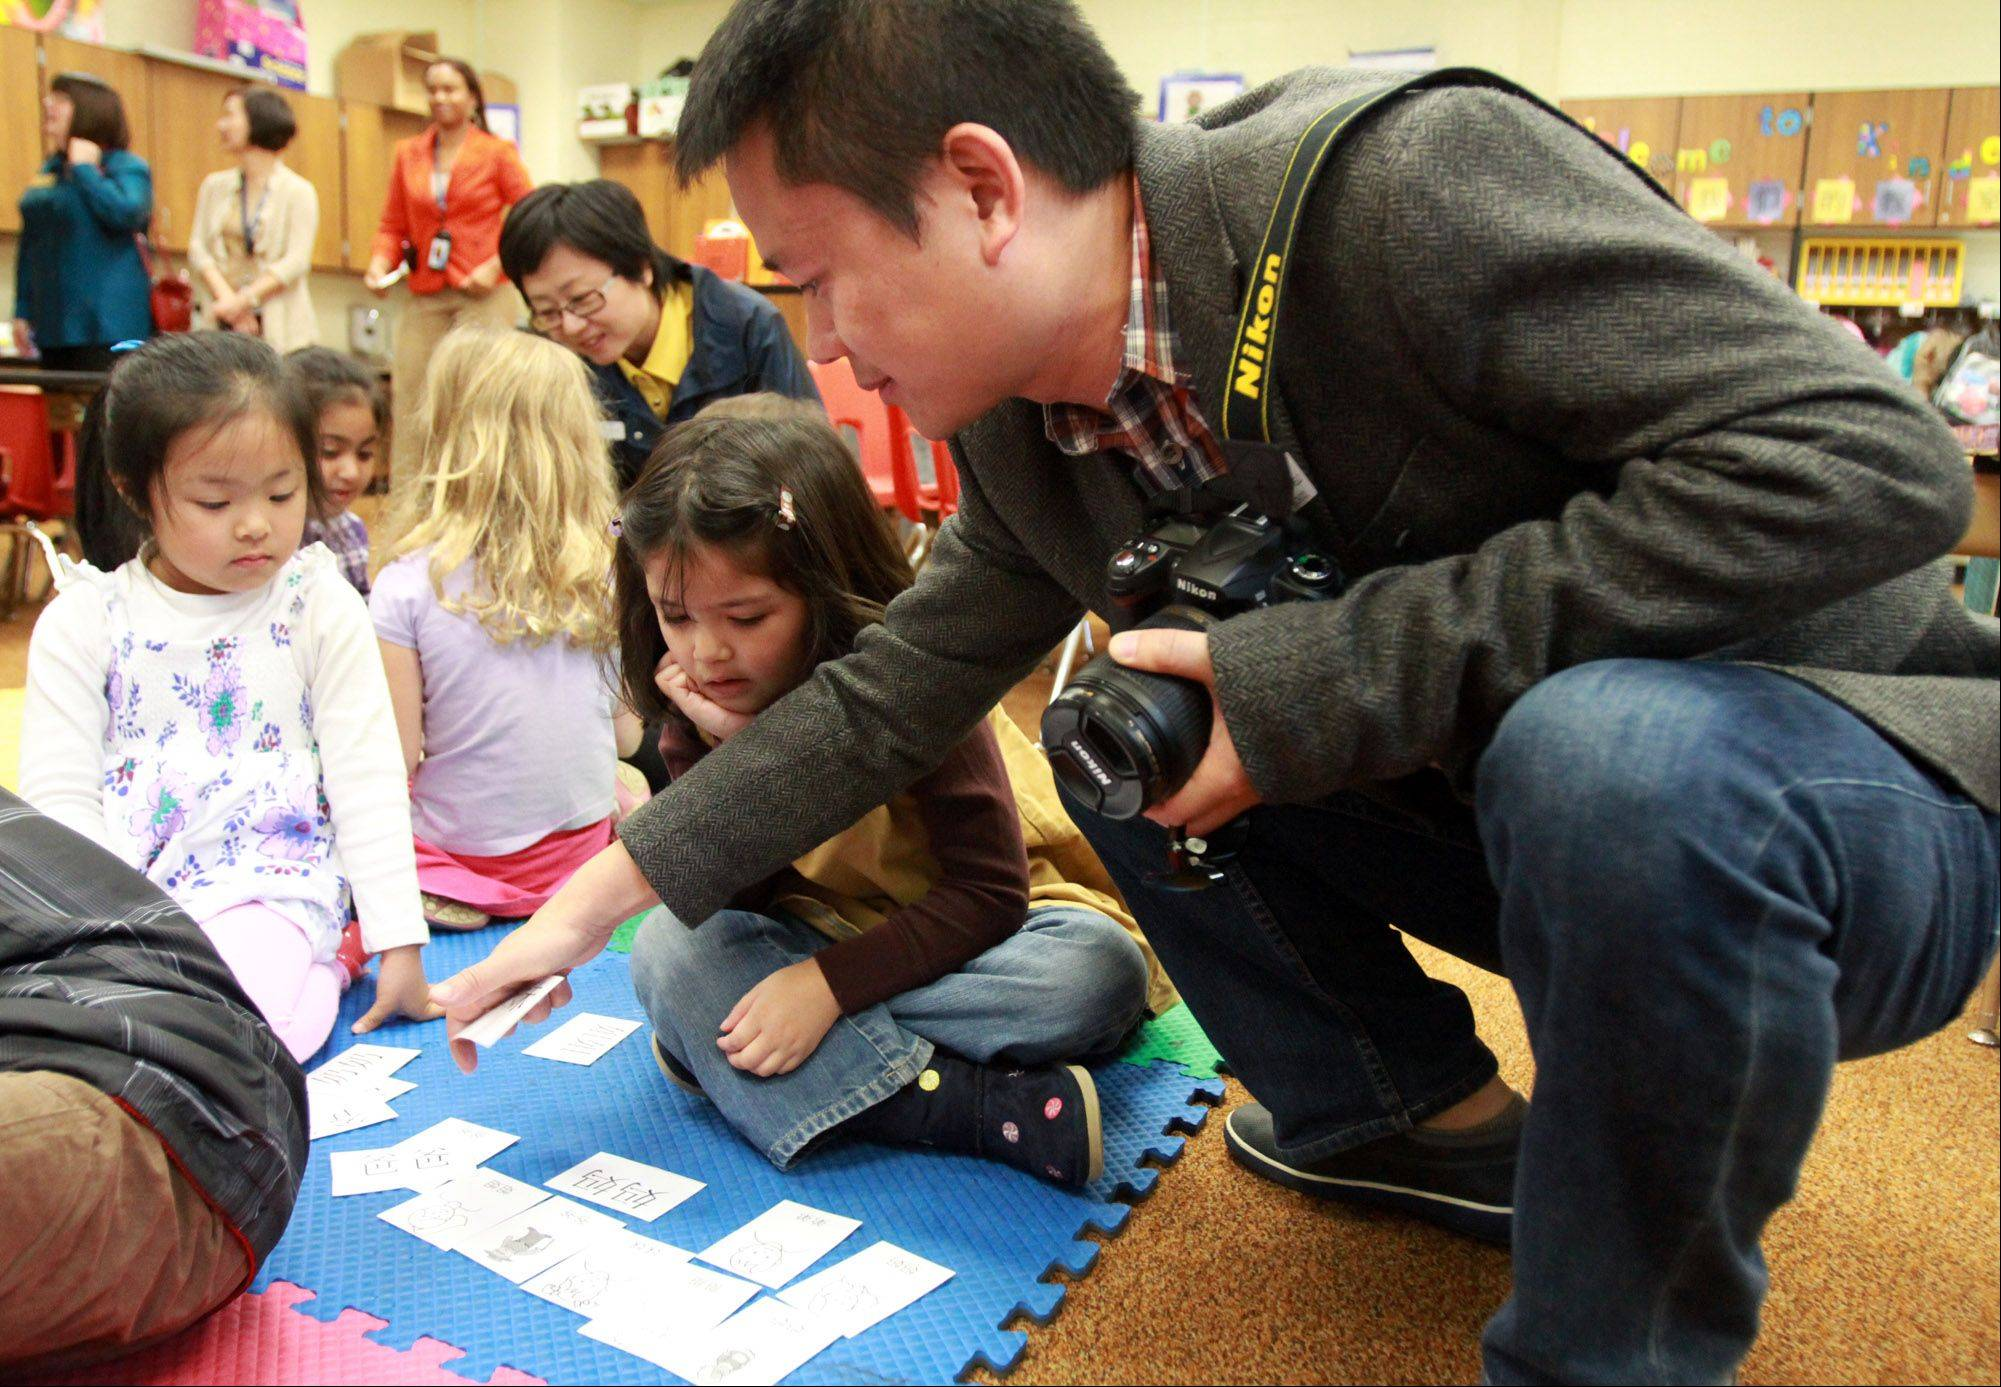 Campanelli Elementary School kindergartners in Angela Kuo�s Chinese immersion class show Chinese language learning cards Thursday to Joe Zhao, deputy division chief with the Bureau of Science and Technology of Guangzhou Municipality as he and other government visitors from Guangzhou, China visit the Schaumburg school.